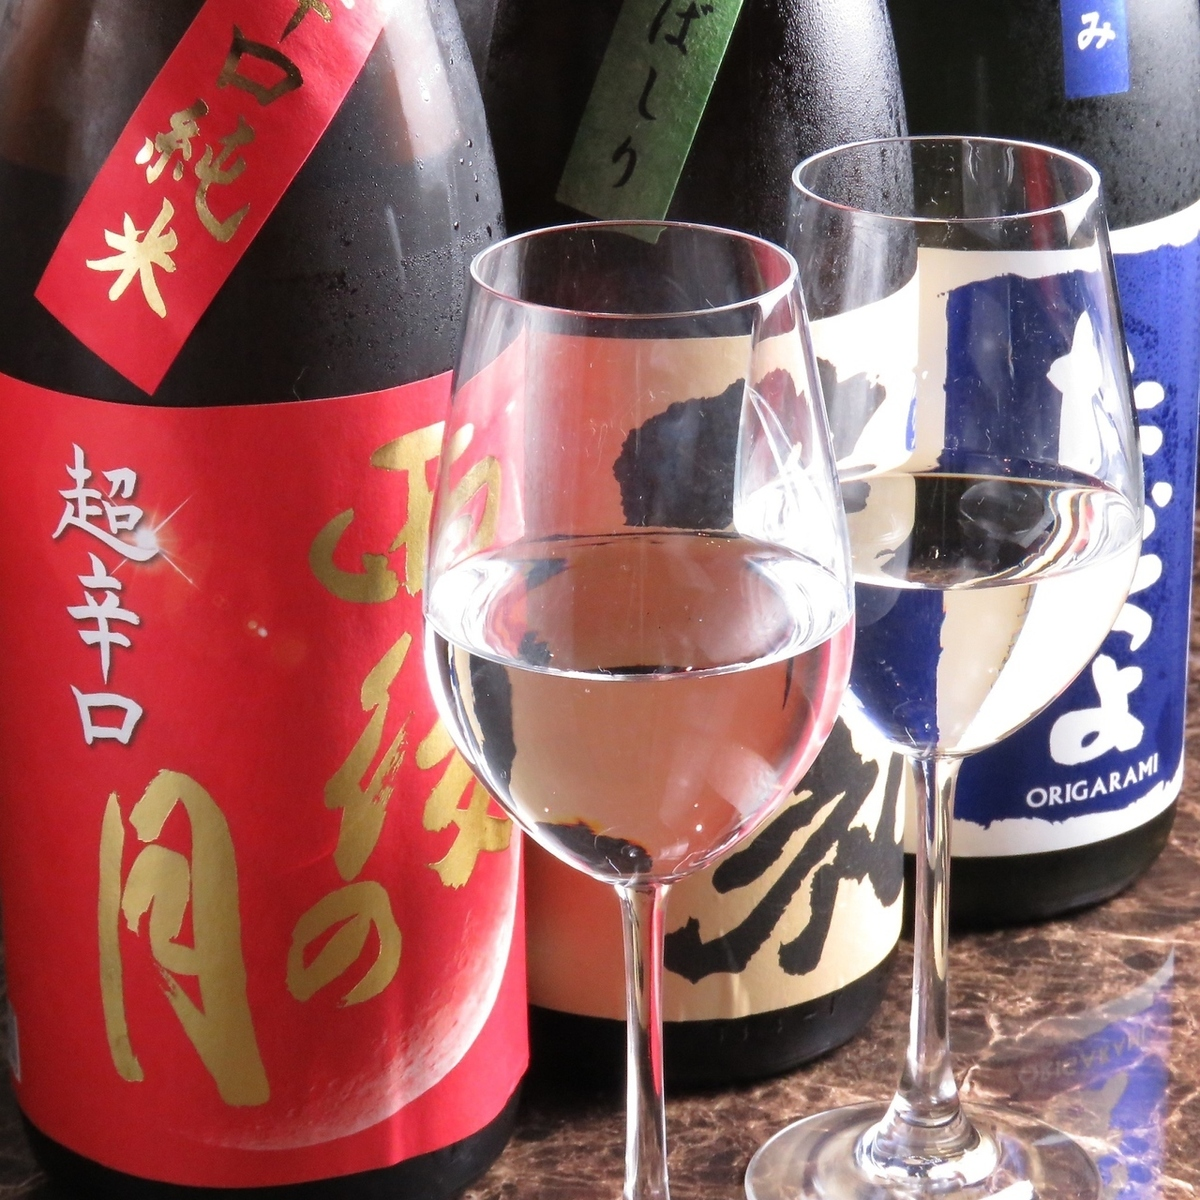 We have carefully selected sake that fits meat!